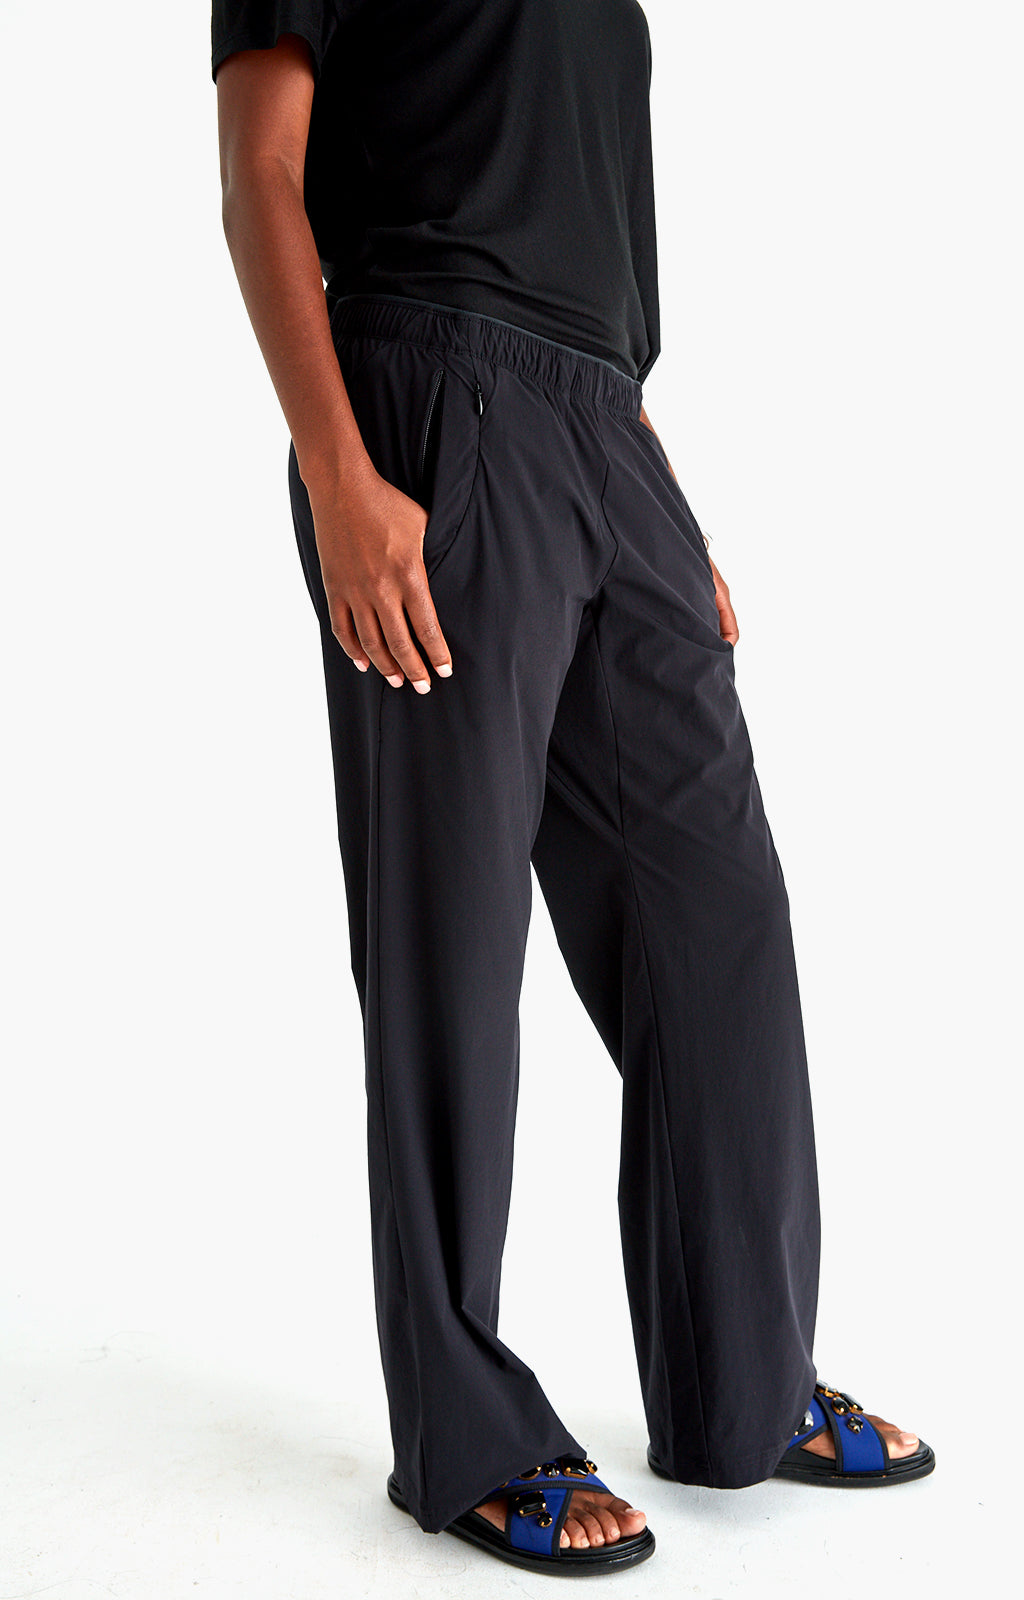 Imagine - Insanely Comfy Long-Haul Flight Pants in Black